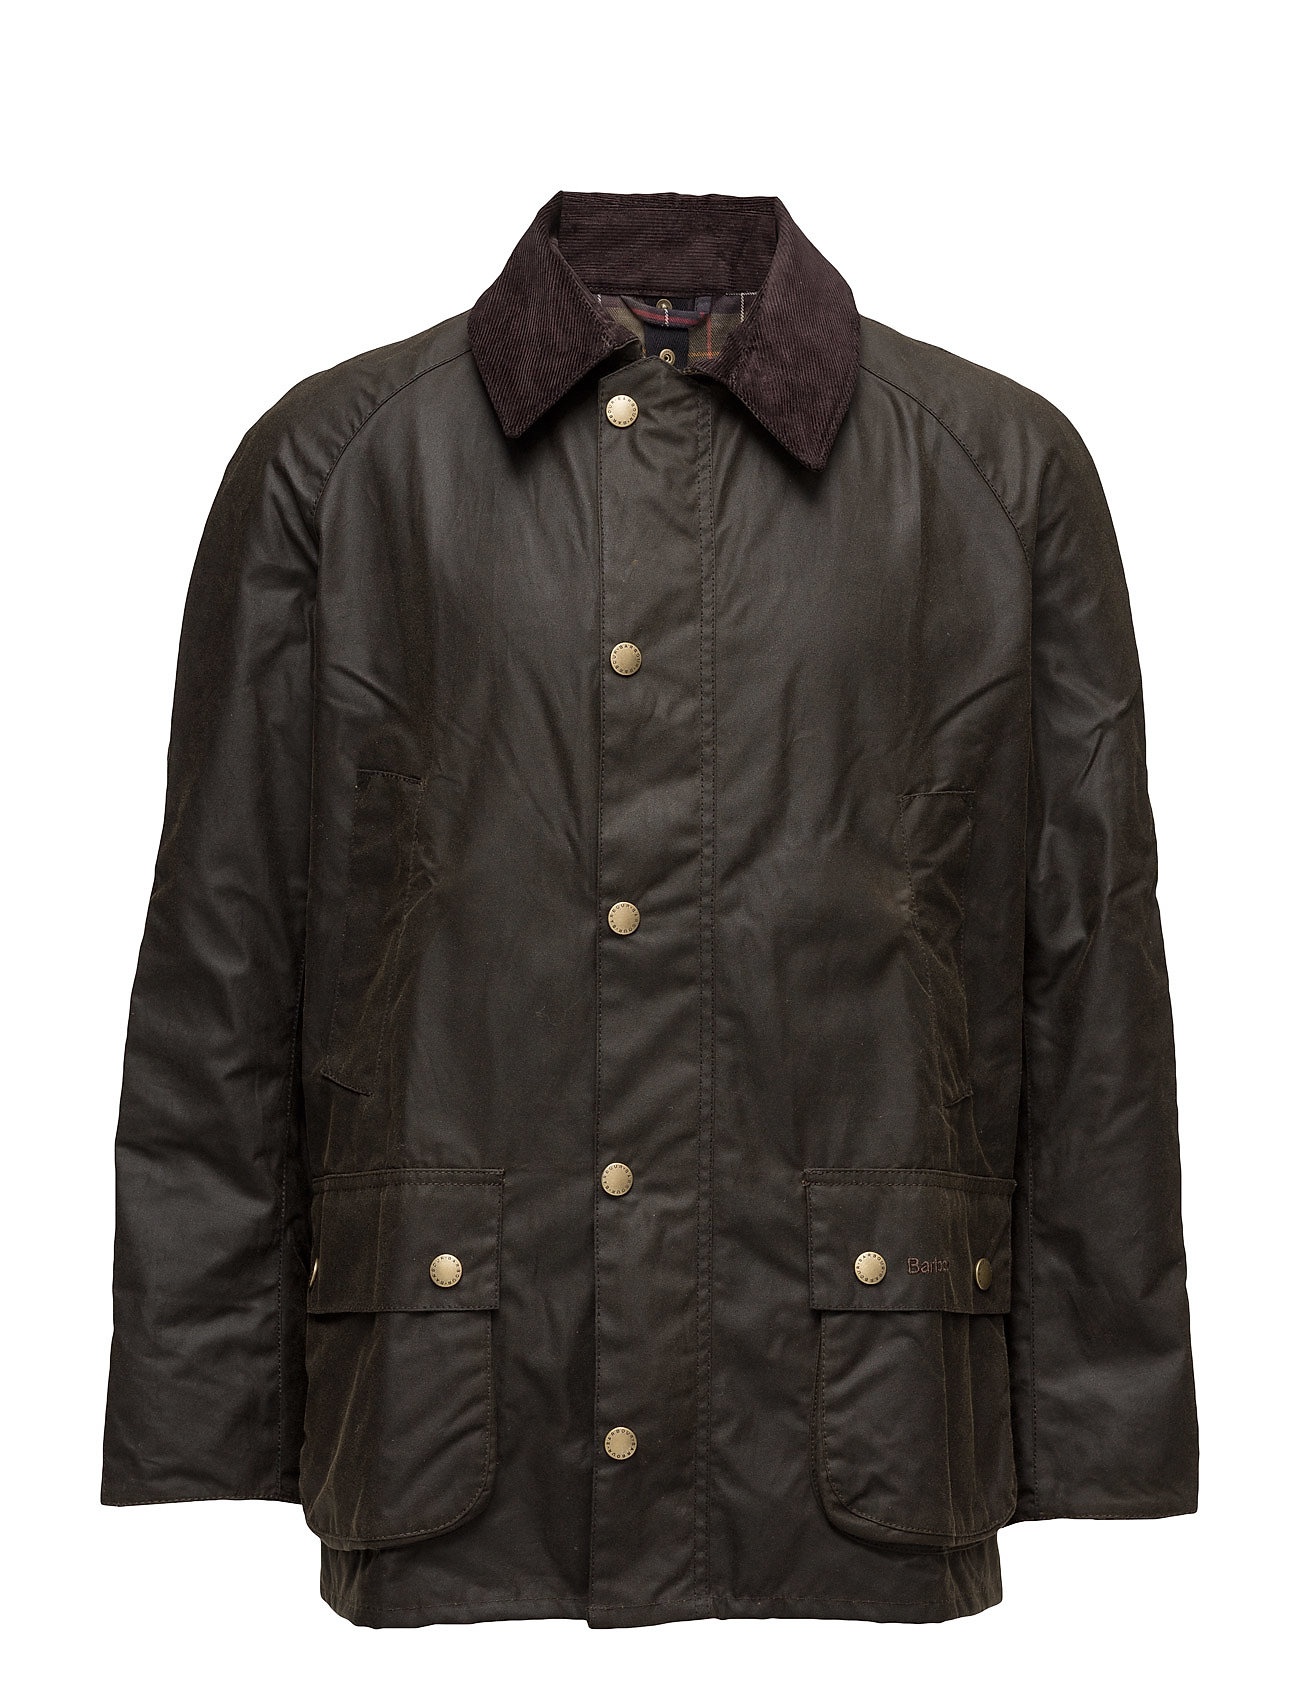 Barbour Barbour Ashby Wax Jacket - DK OLIVE